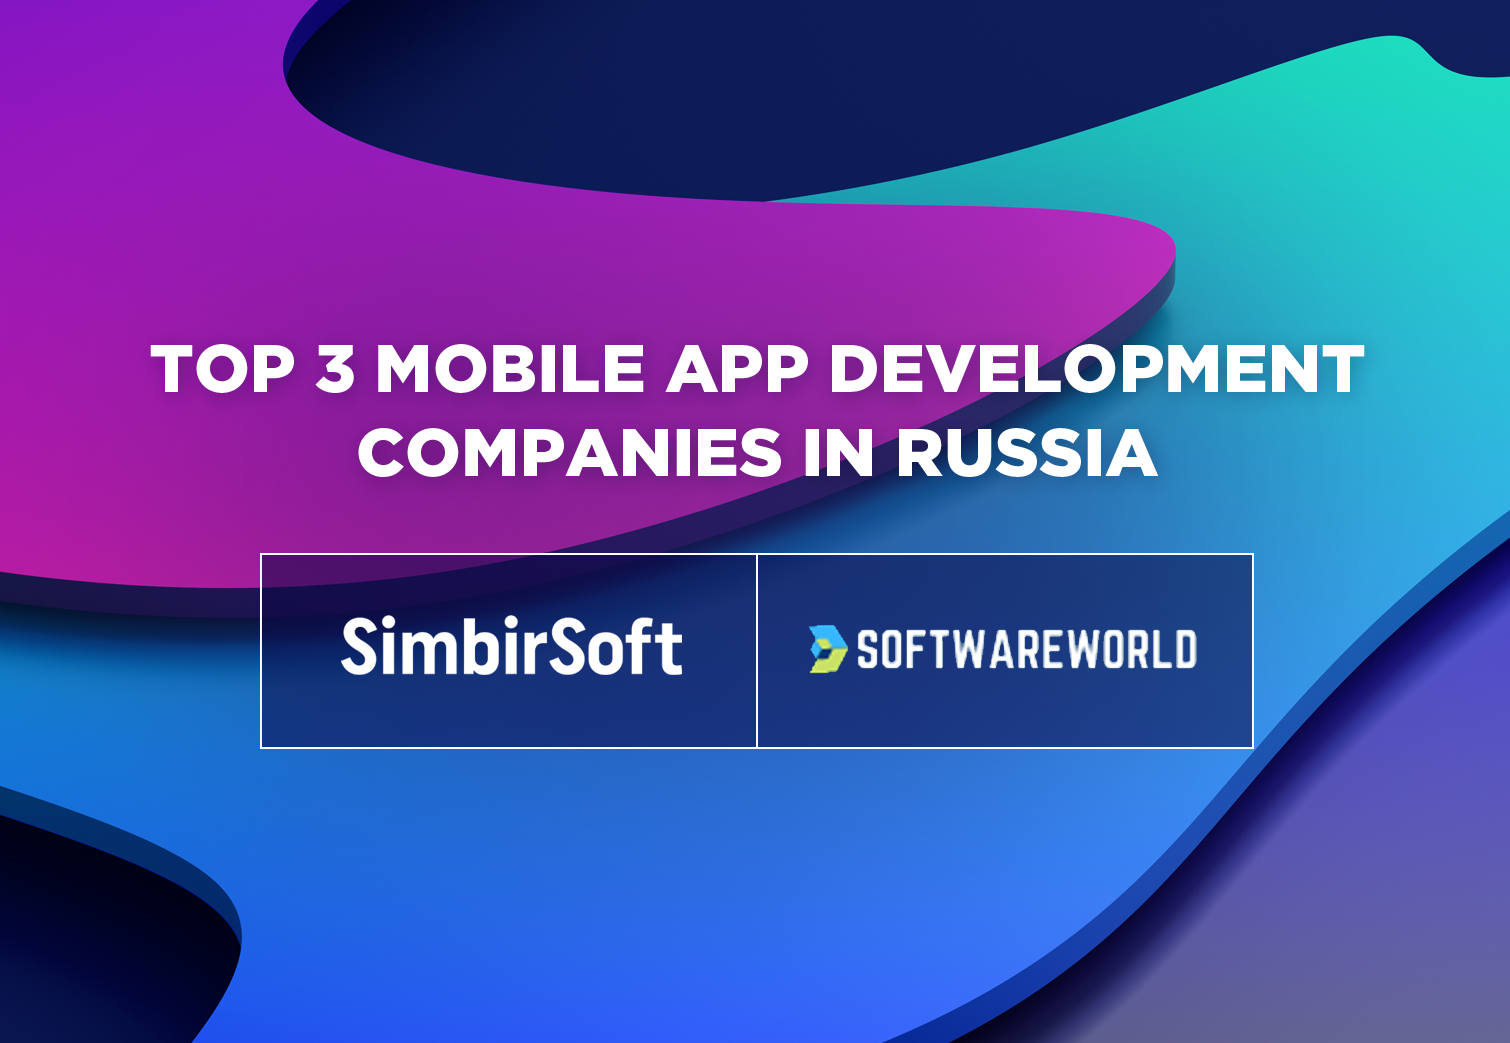 SimbirSoft is one of TOP 3 Mobile app Development Companies in Russia